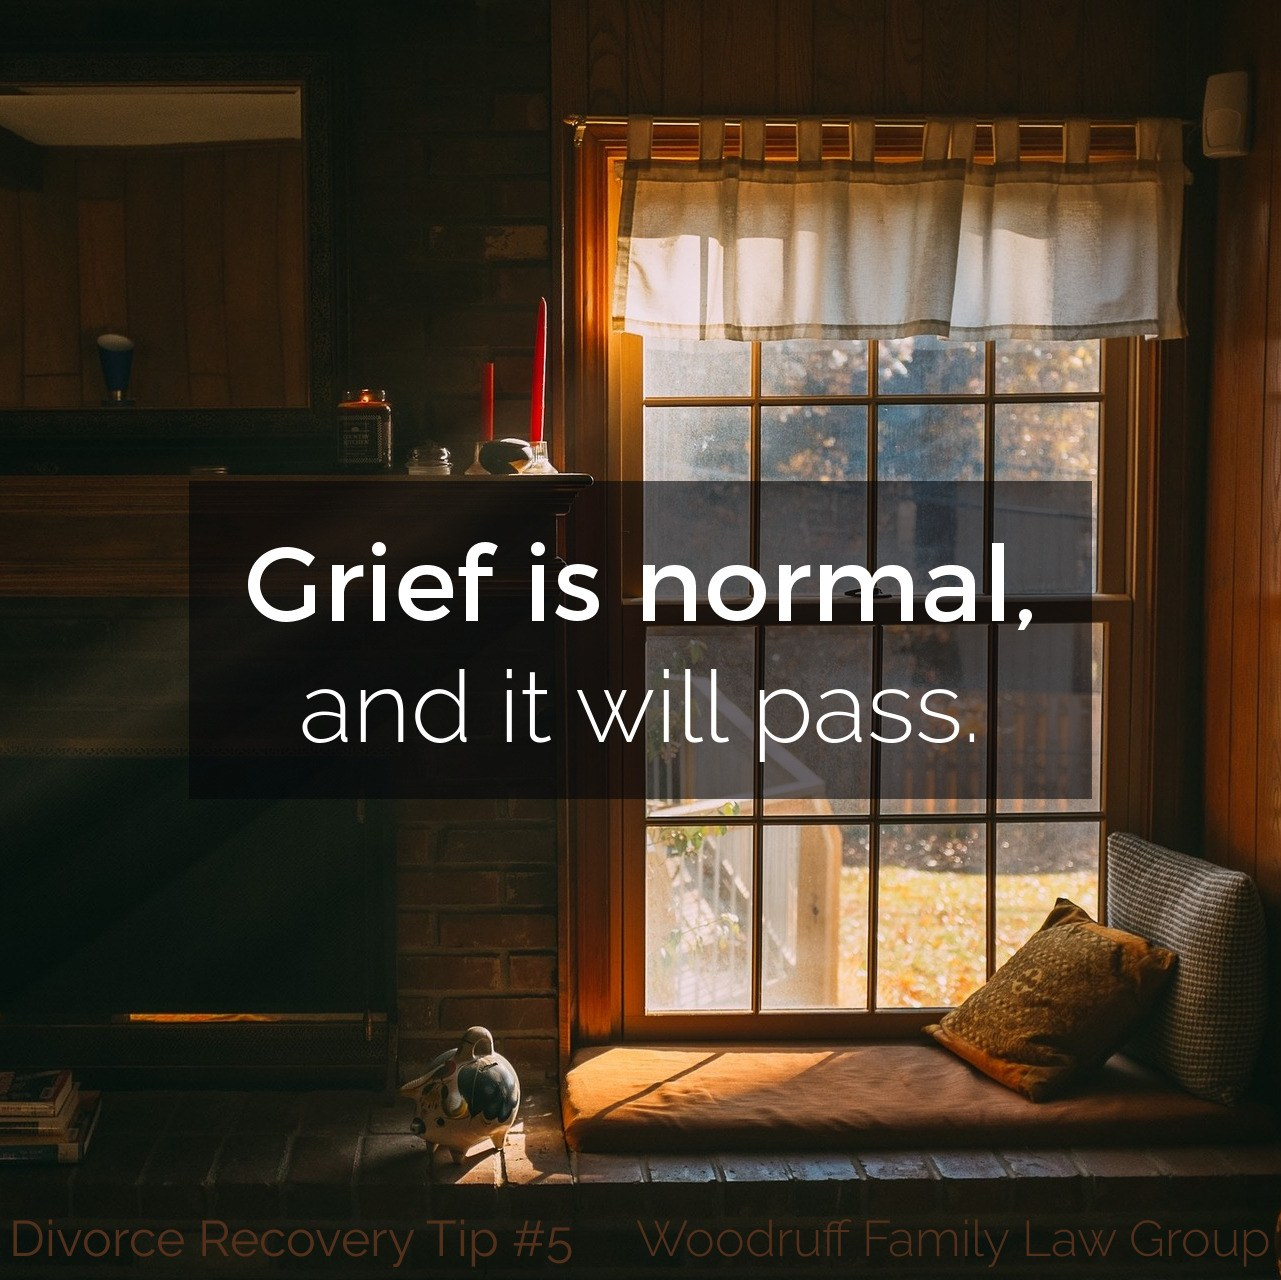 Divorce Recovery Tip 5 - Grief is normal, and it will pass.